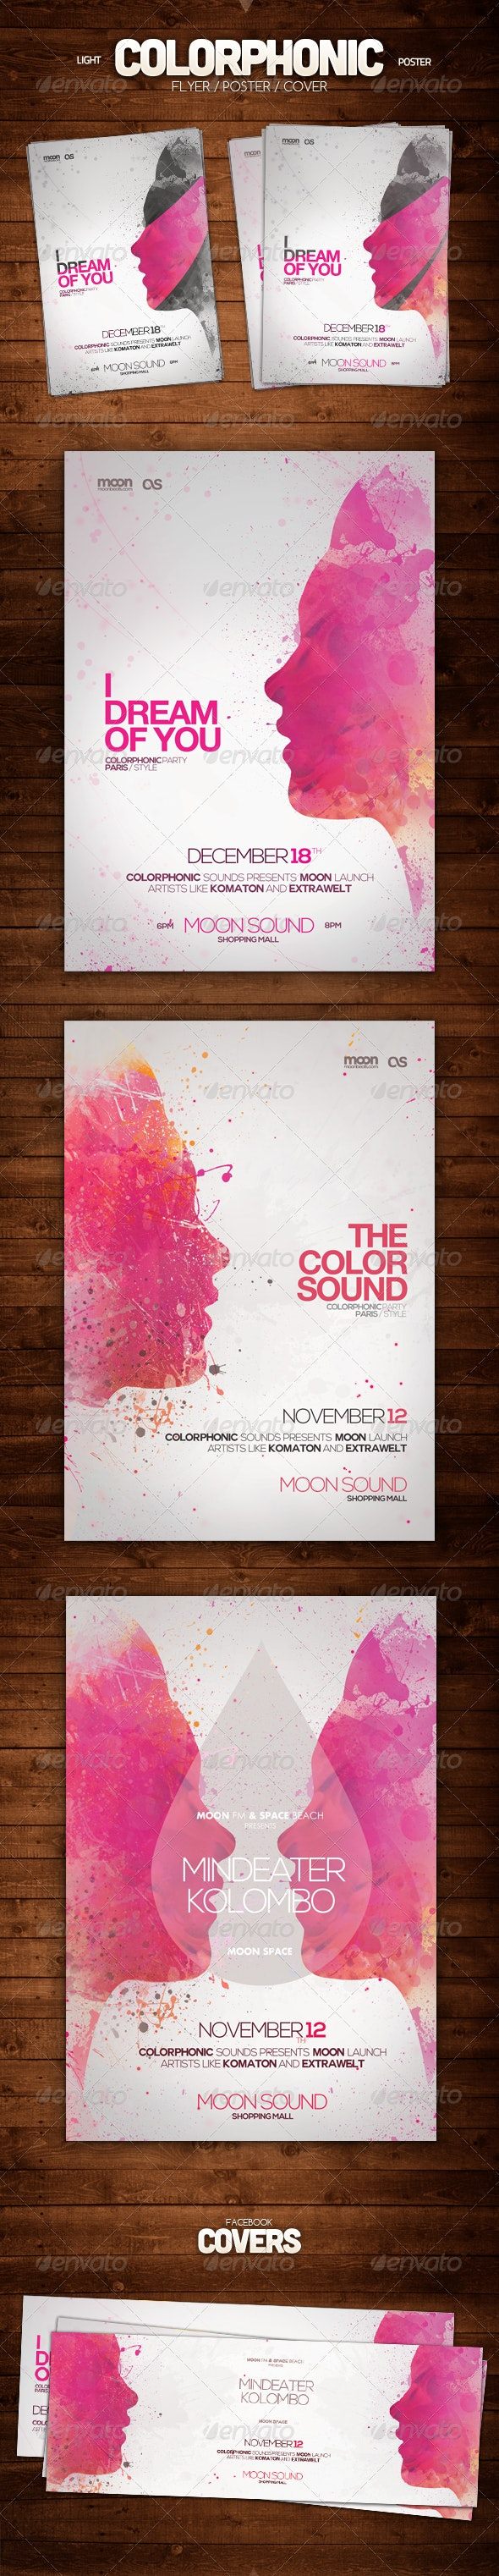 Light Colorphonic Poster - Clubs & Parties Events